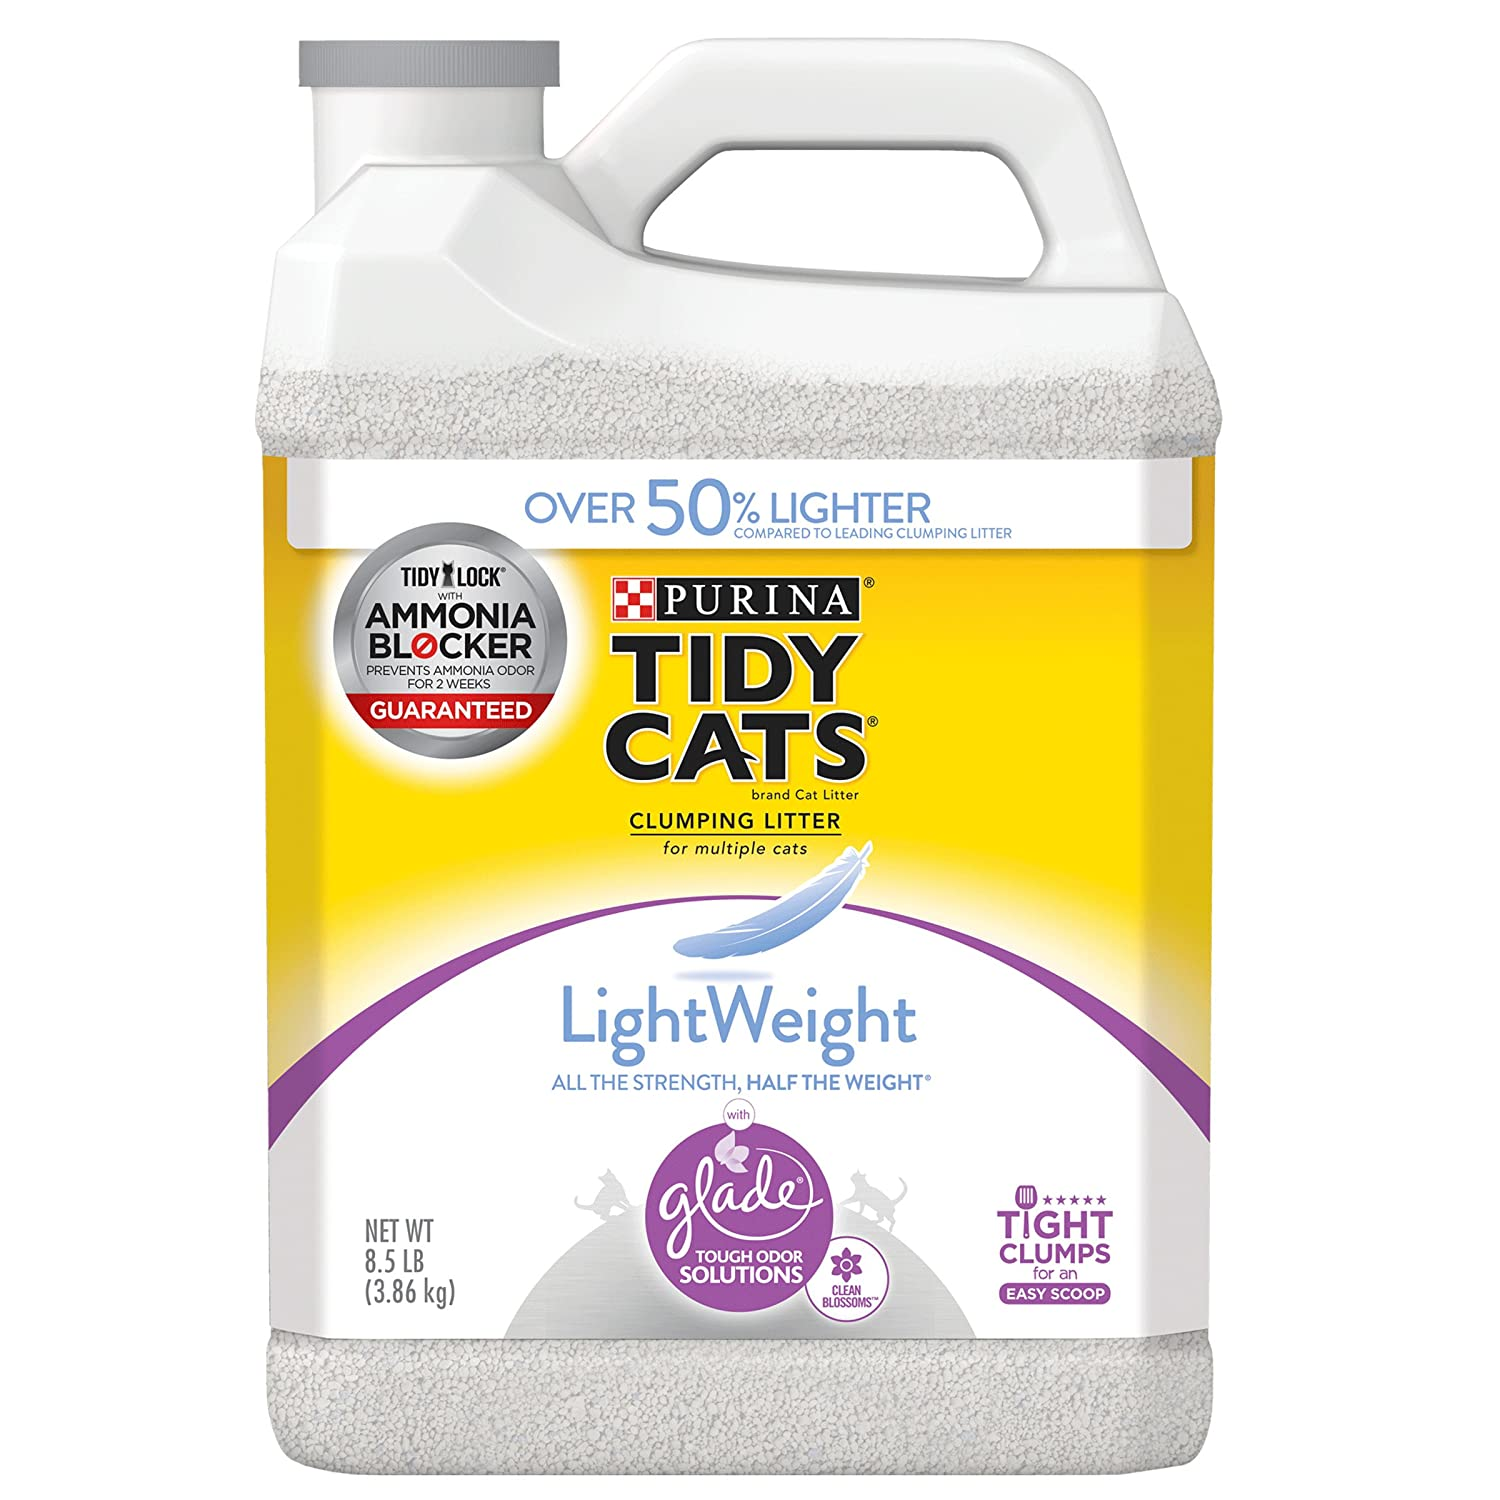 (2) 8.5 lb. Jugs Purina Tidy Cats Lightweight Glade Tough Odor Solutions Clumping Cat Litter